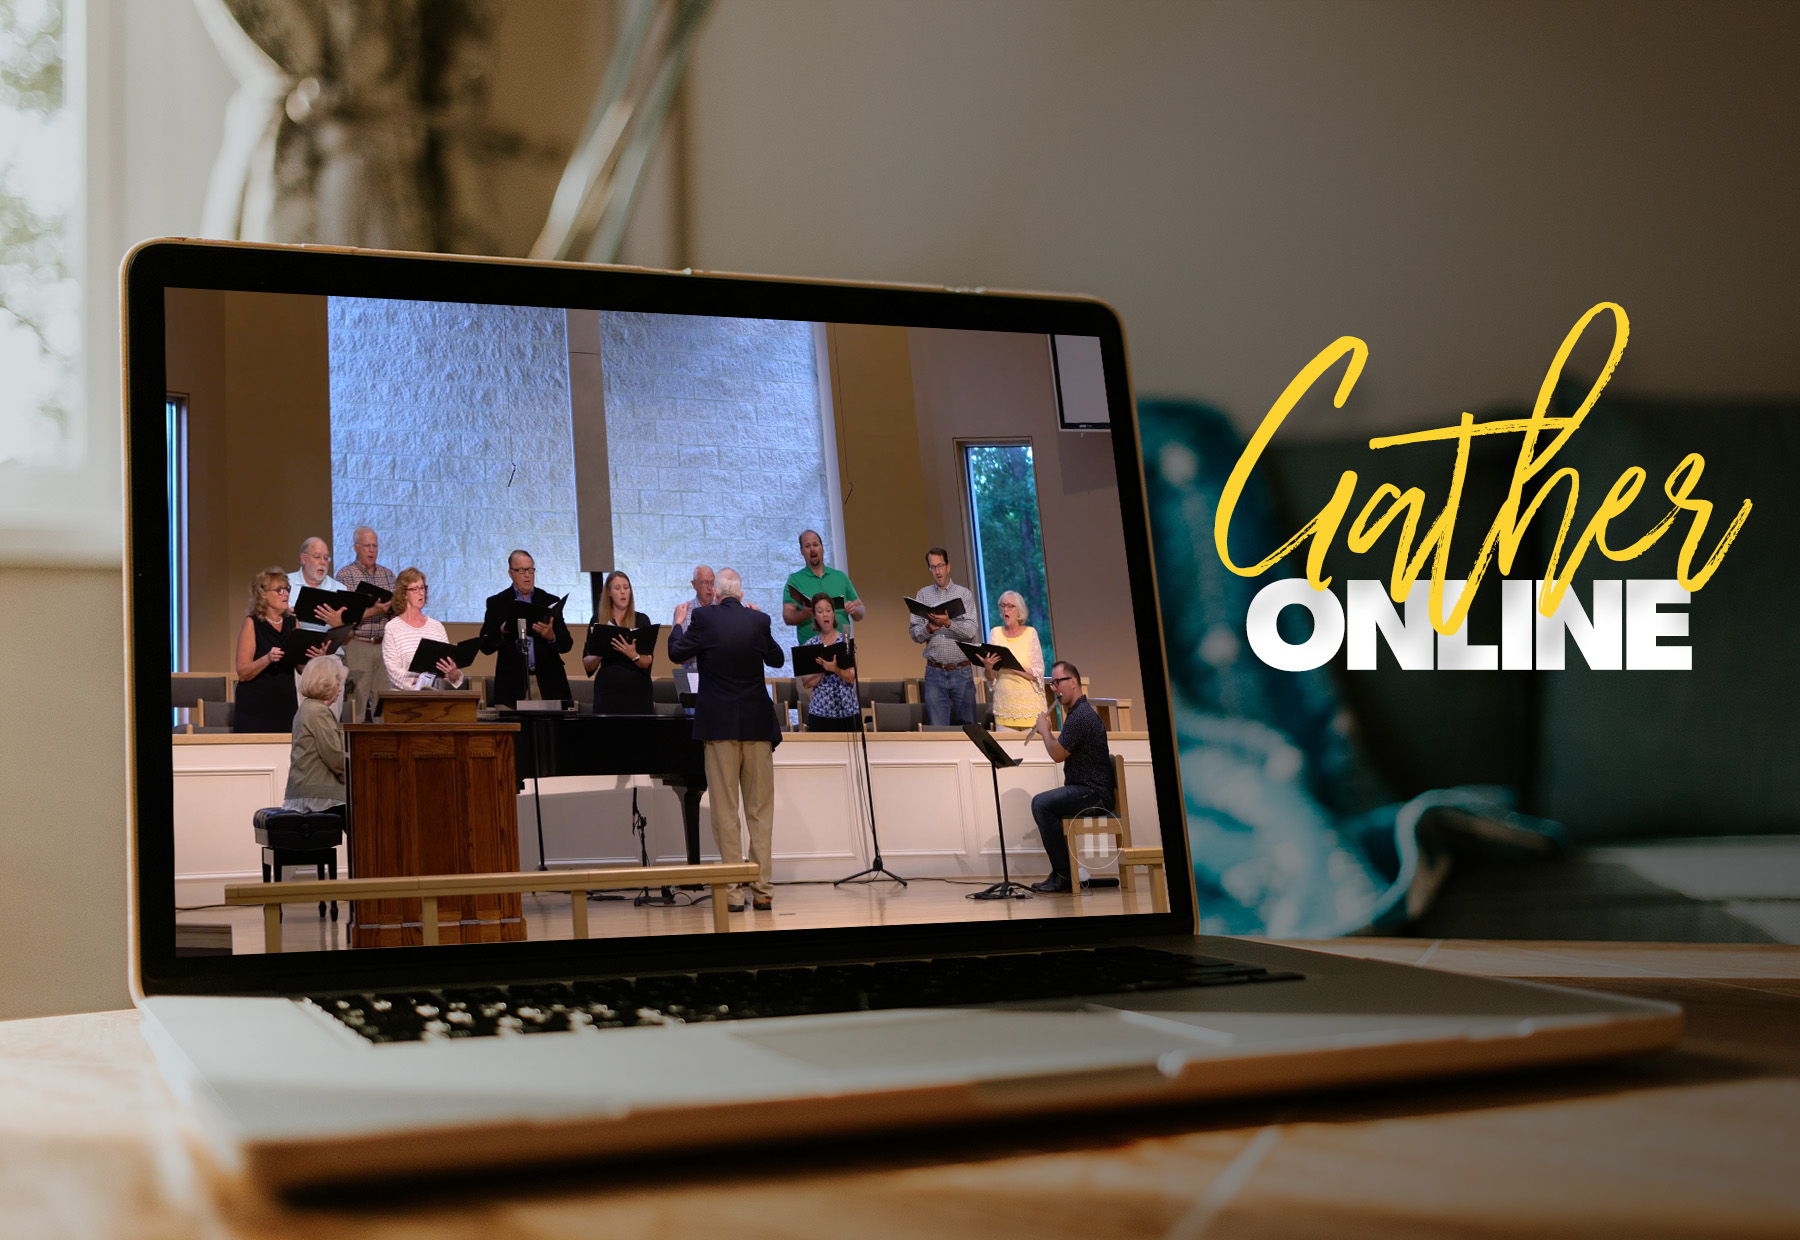 Christ Church Birmingham Online Traditional Worship | July 5, 2020